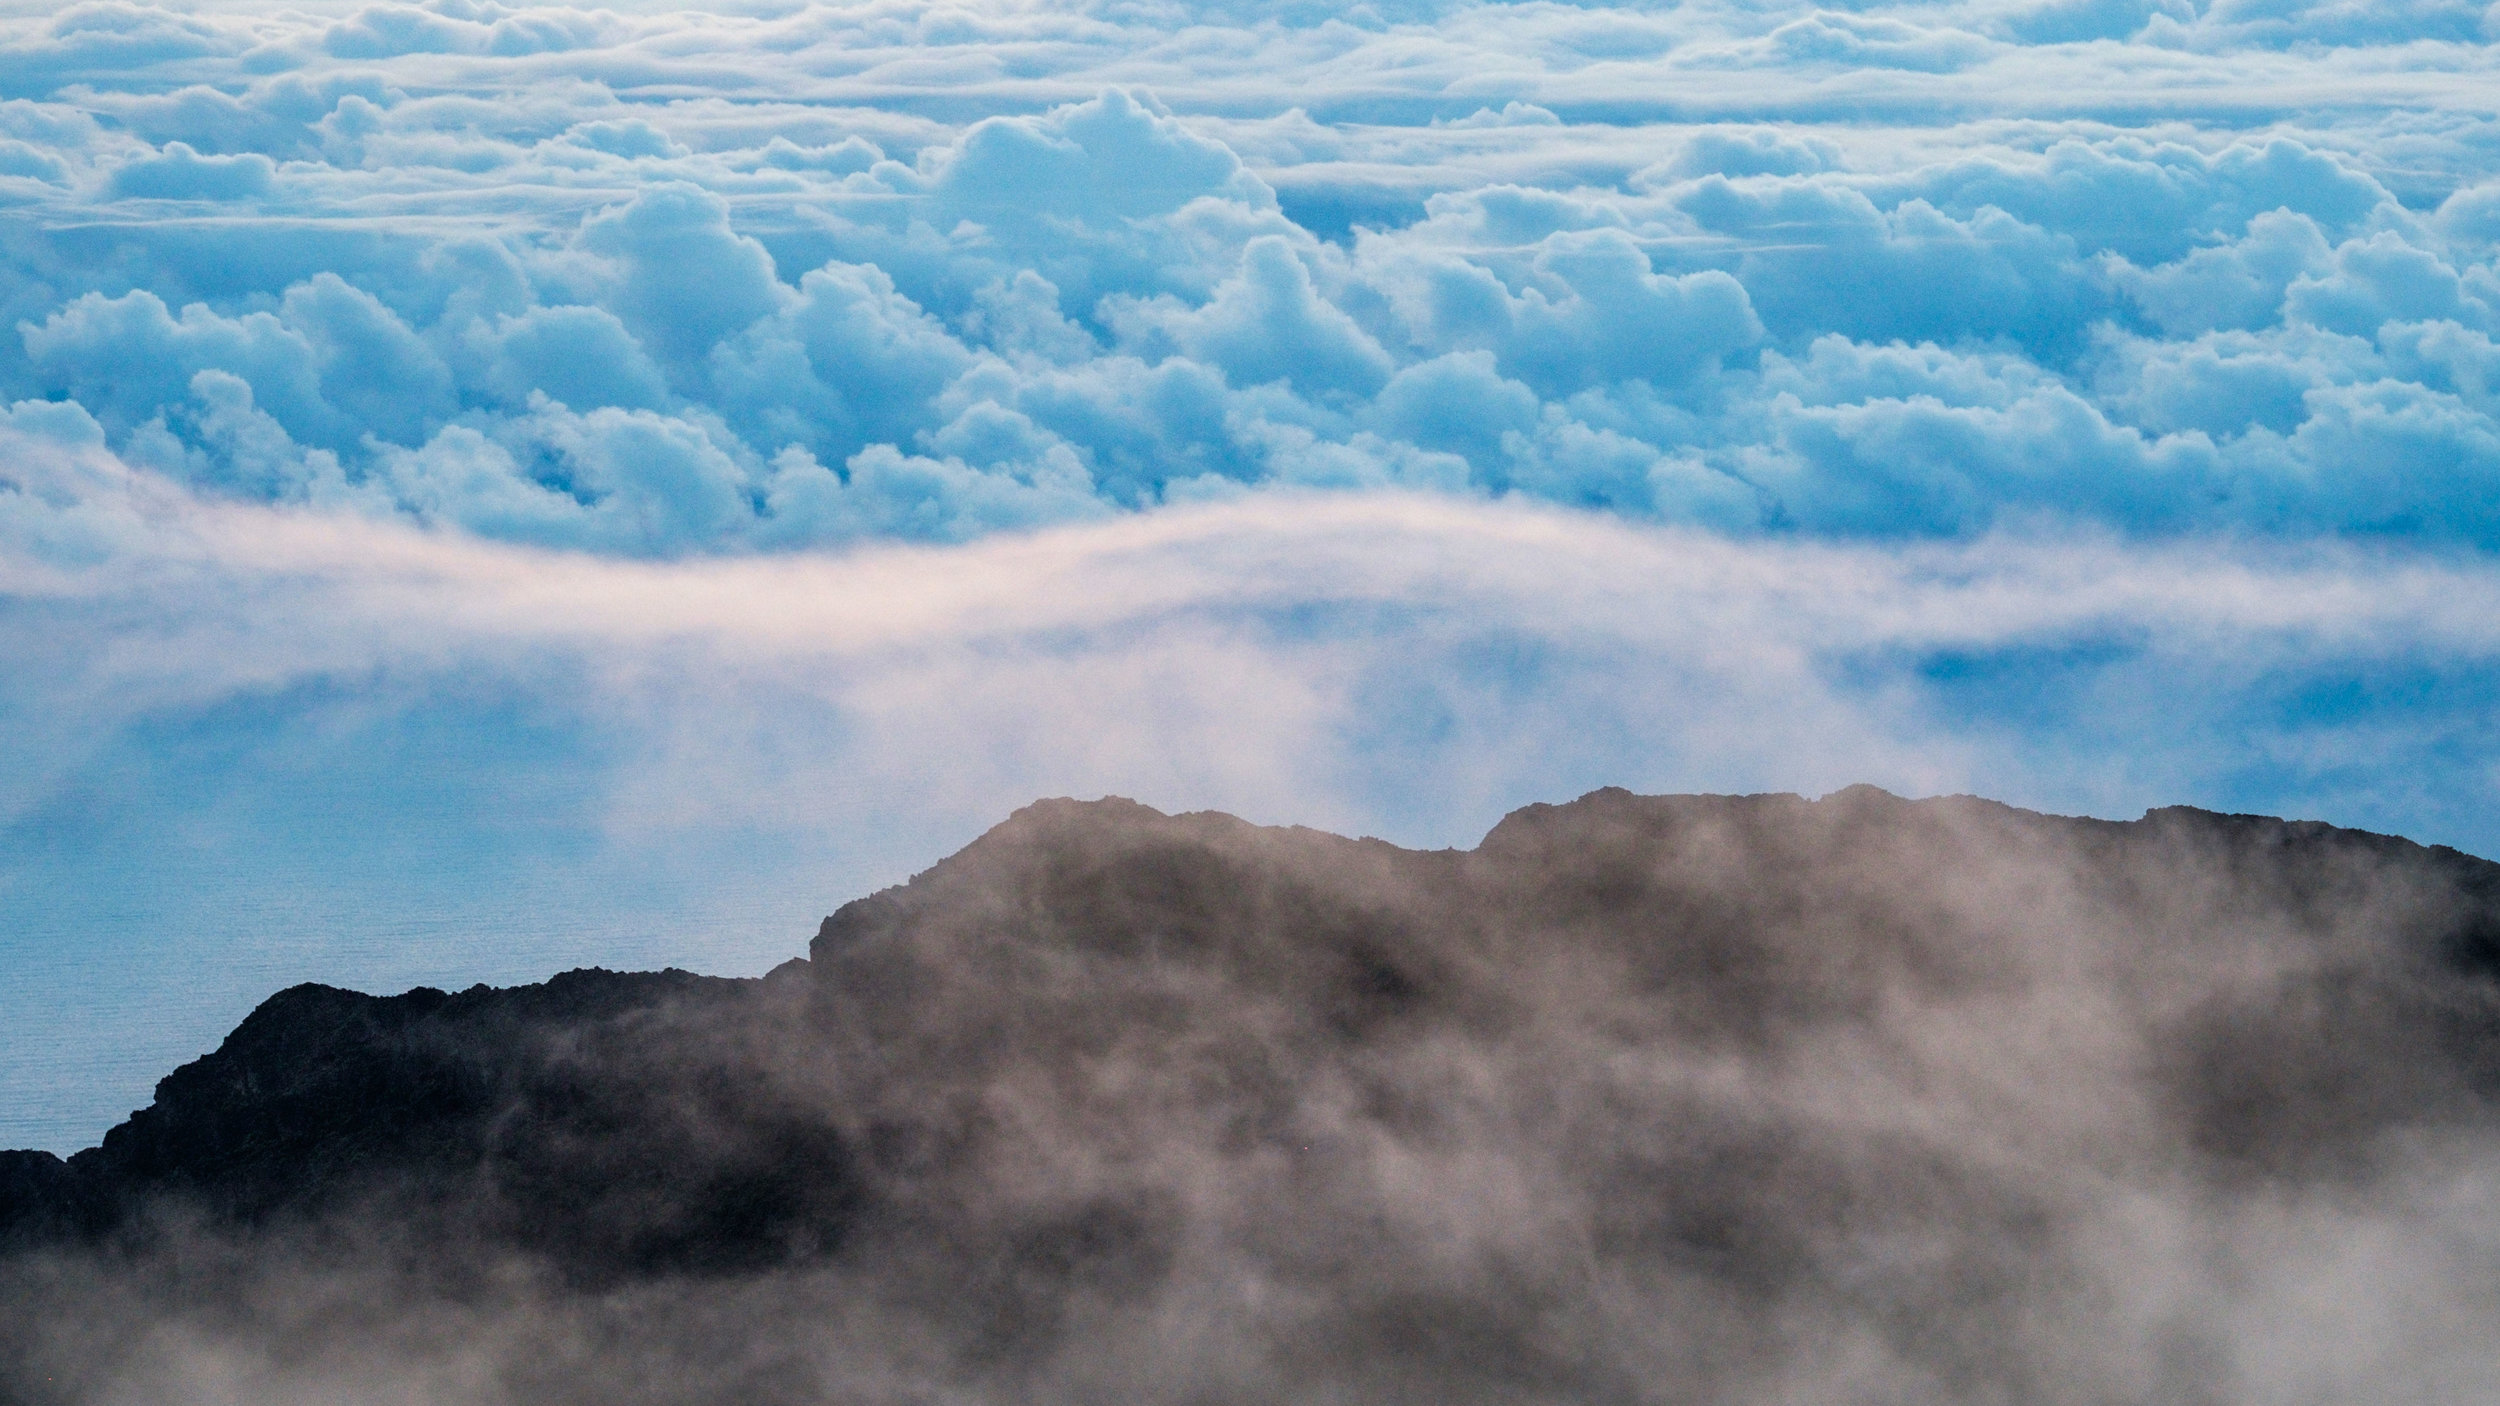 Sunrise view of the clouds hugging the crater atop Haleakala summit in December, 2016.